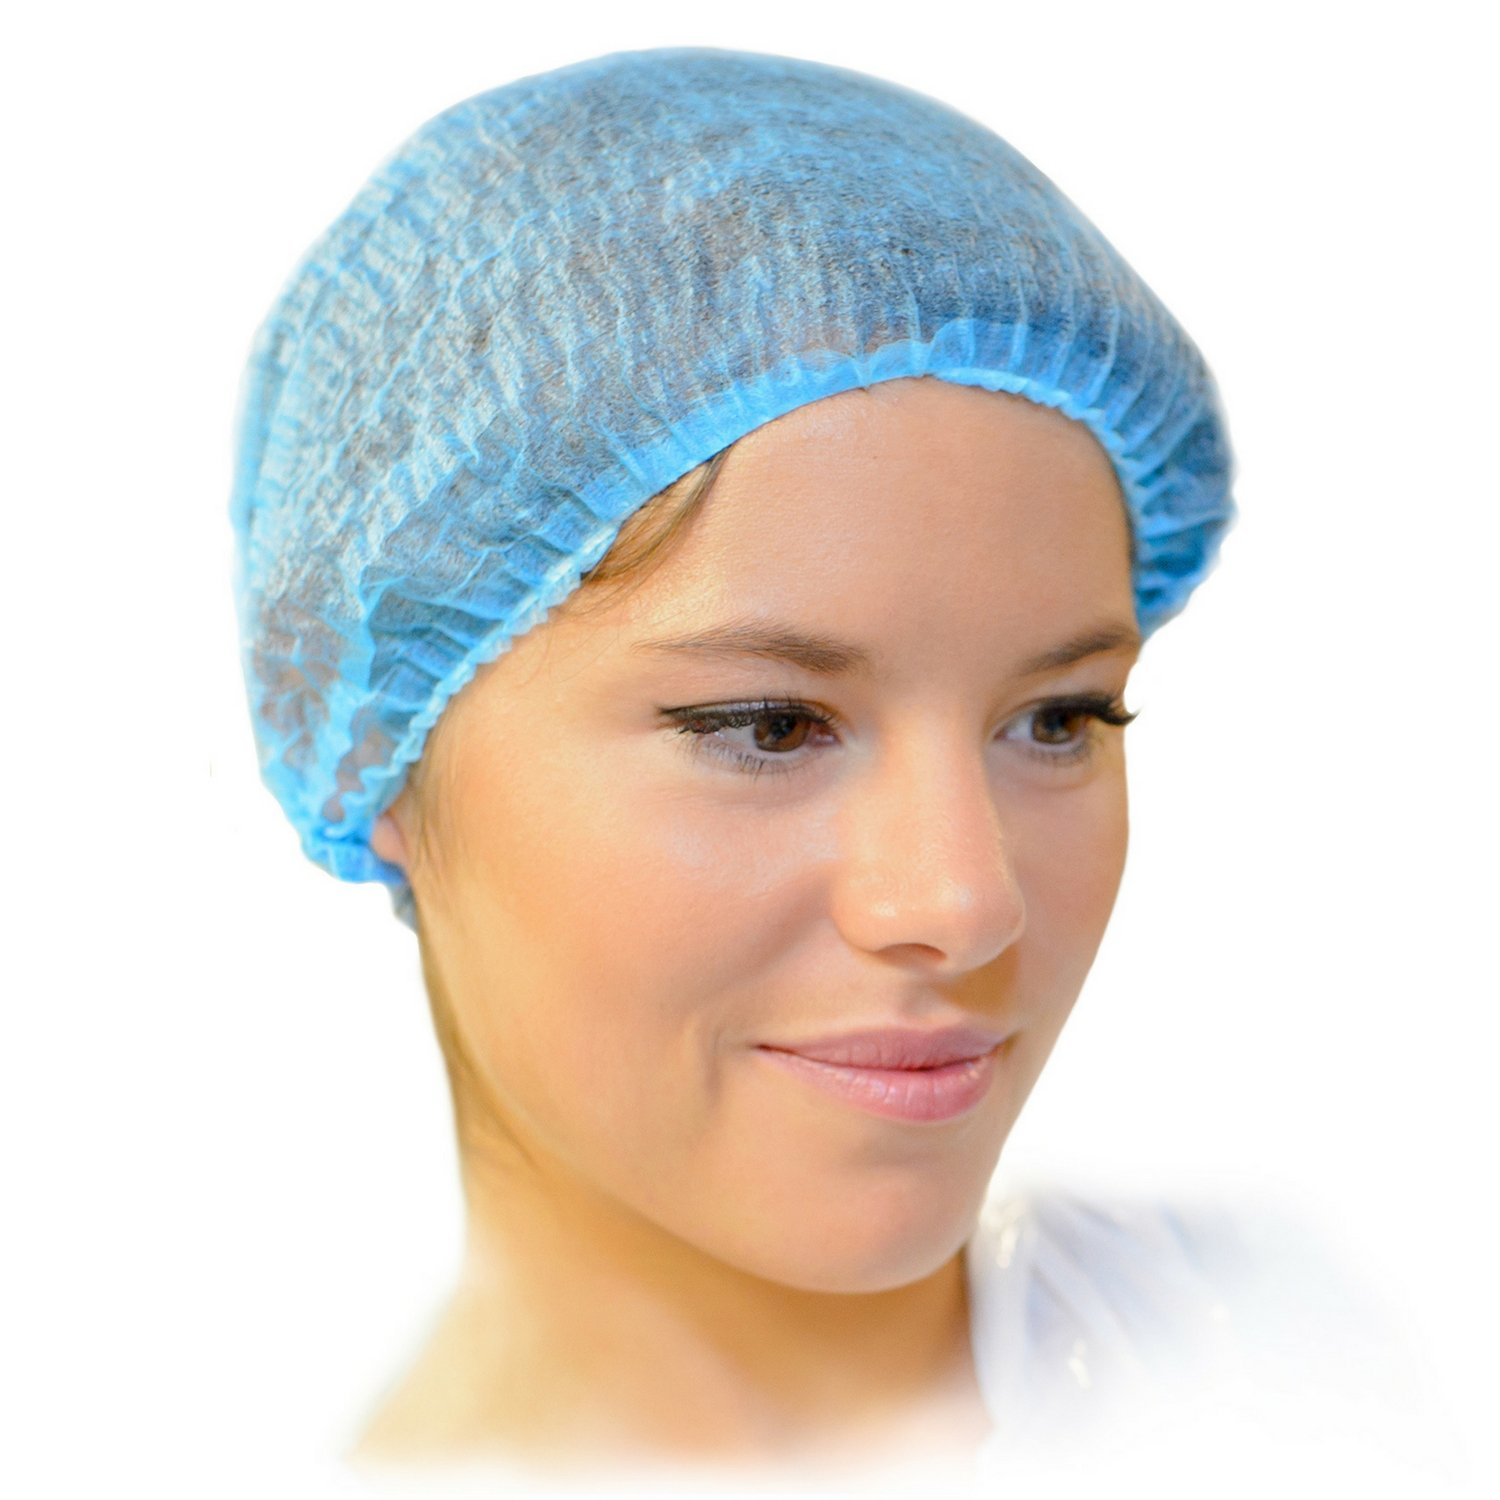 MIFFLIN Hairnets (Blue, 200 Pack) for Hair Cover, Disposable Polypropylene Bouffant Bulk Hairnet Caps for Food Service, Hair Nets for Non Medical Use by MIFFLIN (Image #8)